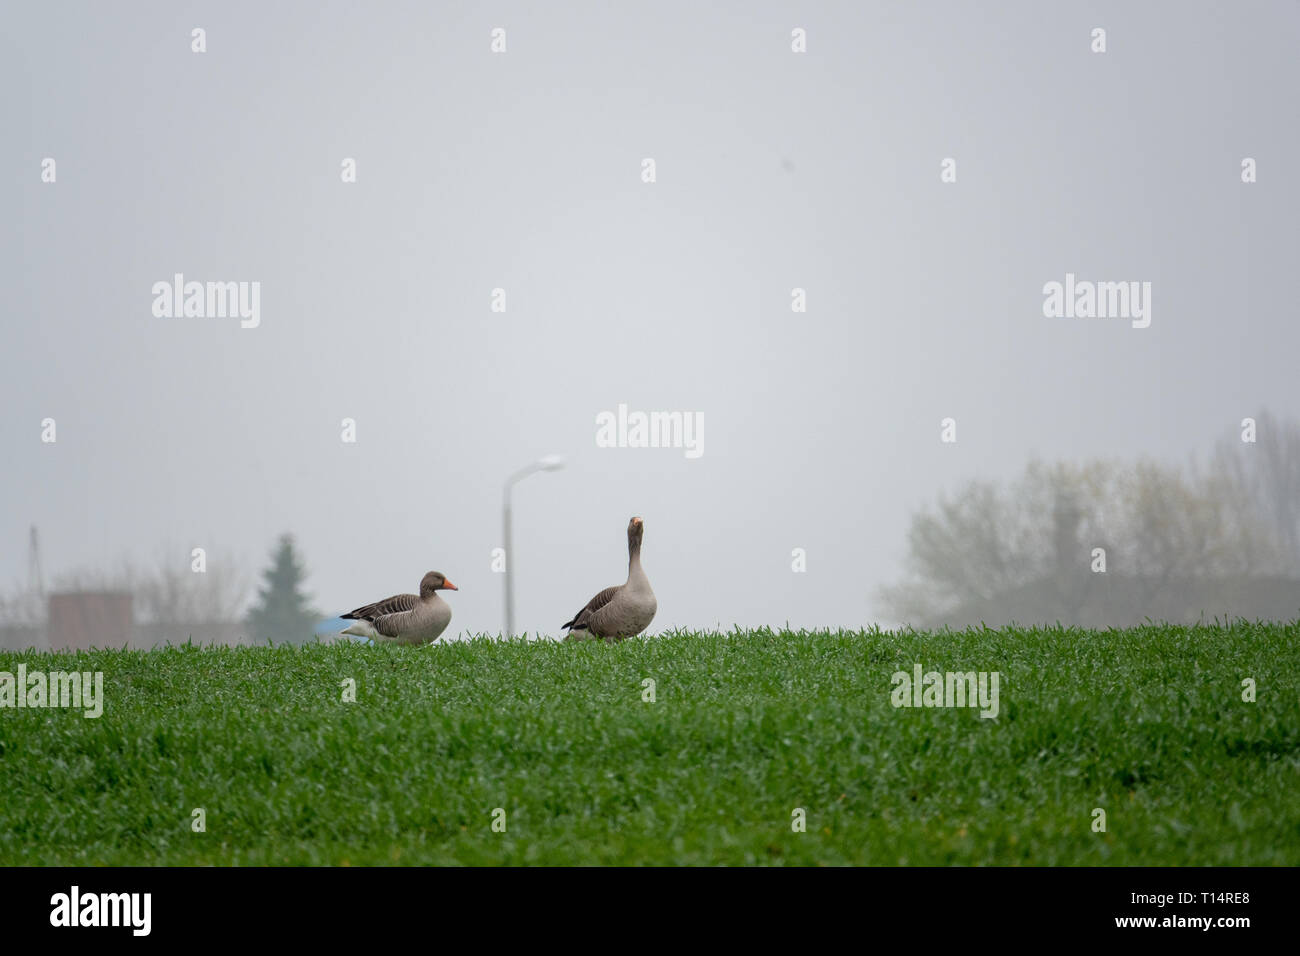 Grey geese resting on a green field - Stock Image